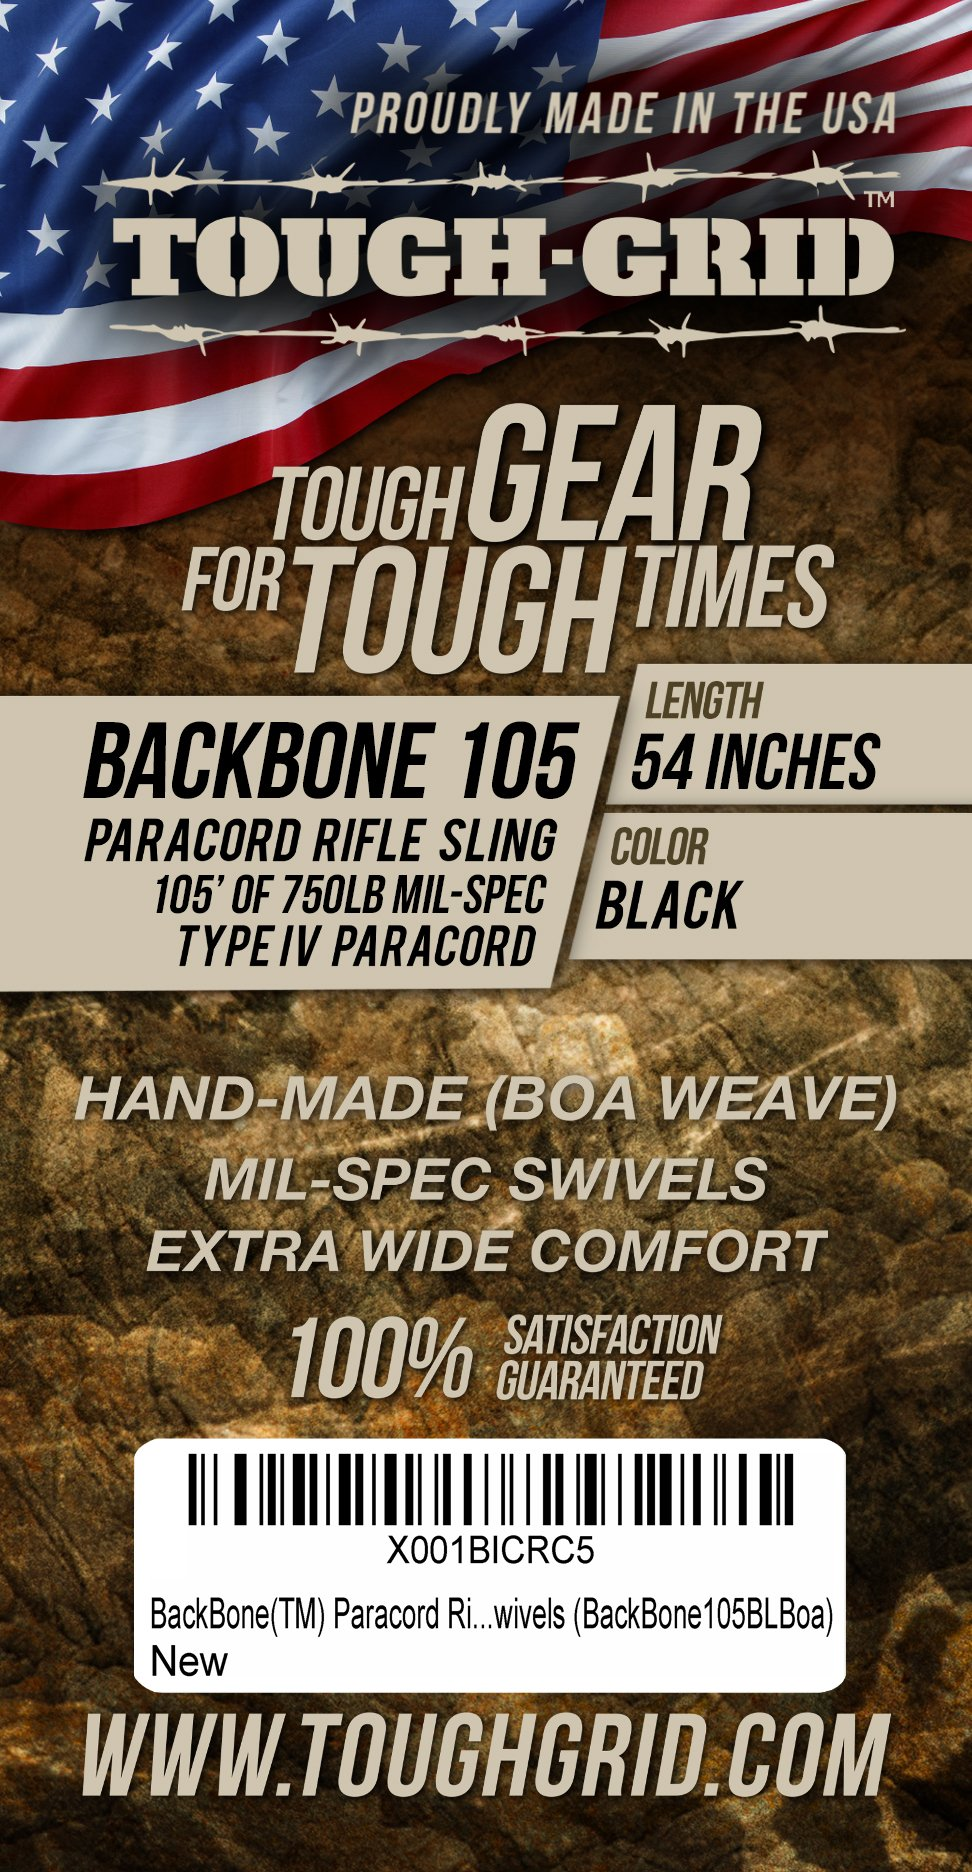 TOUGH-GRID Backbone(TM) Paracord Rifle Sling - Gun Sling/Rifle Sling - Handmade in The USA with Authentic Mil-Spec 750lb Type IV Paracord and Mil-Spec Swivels (BackBone105BLBoa) by TOUGH-GRID (Image #5)